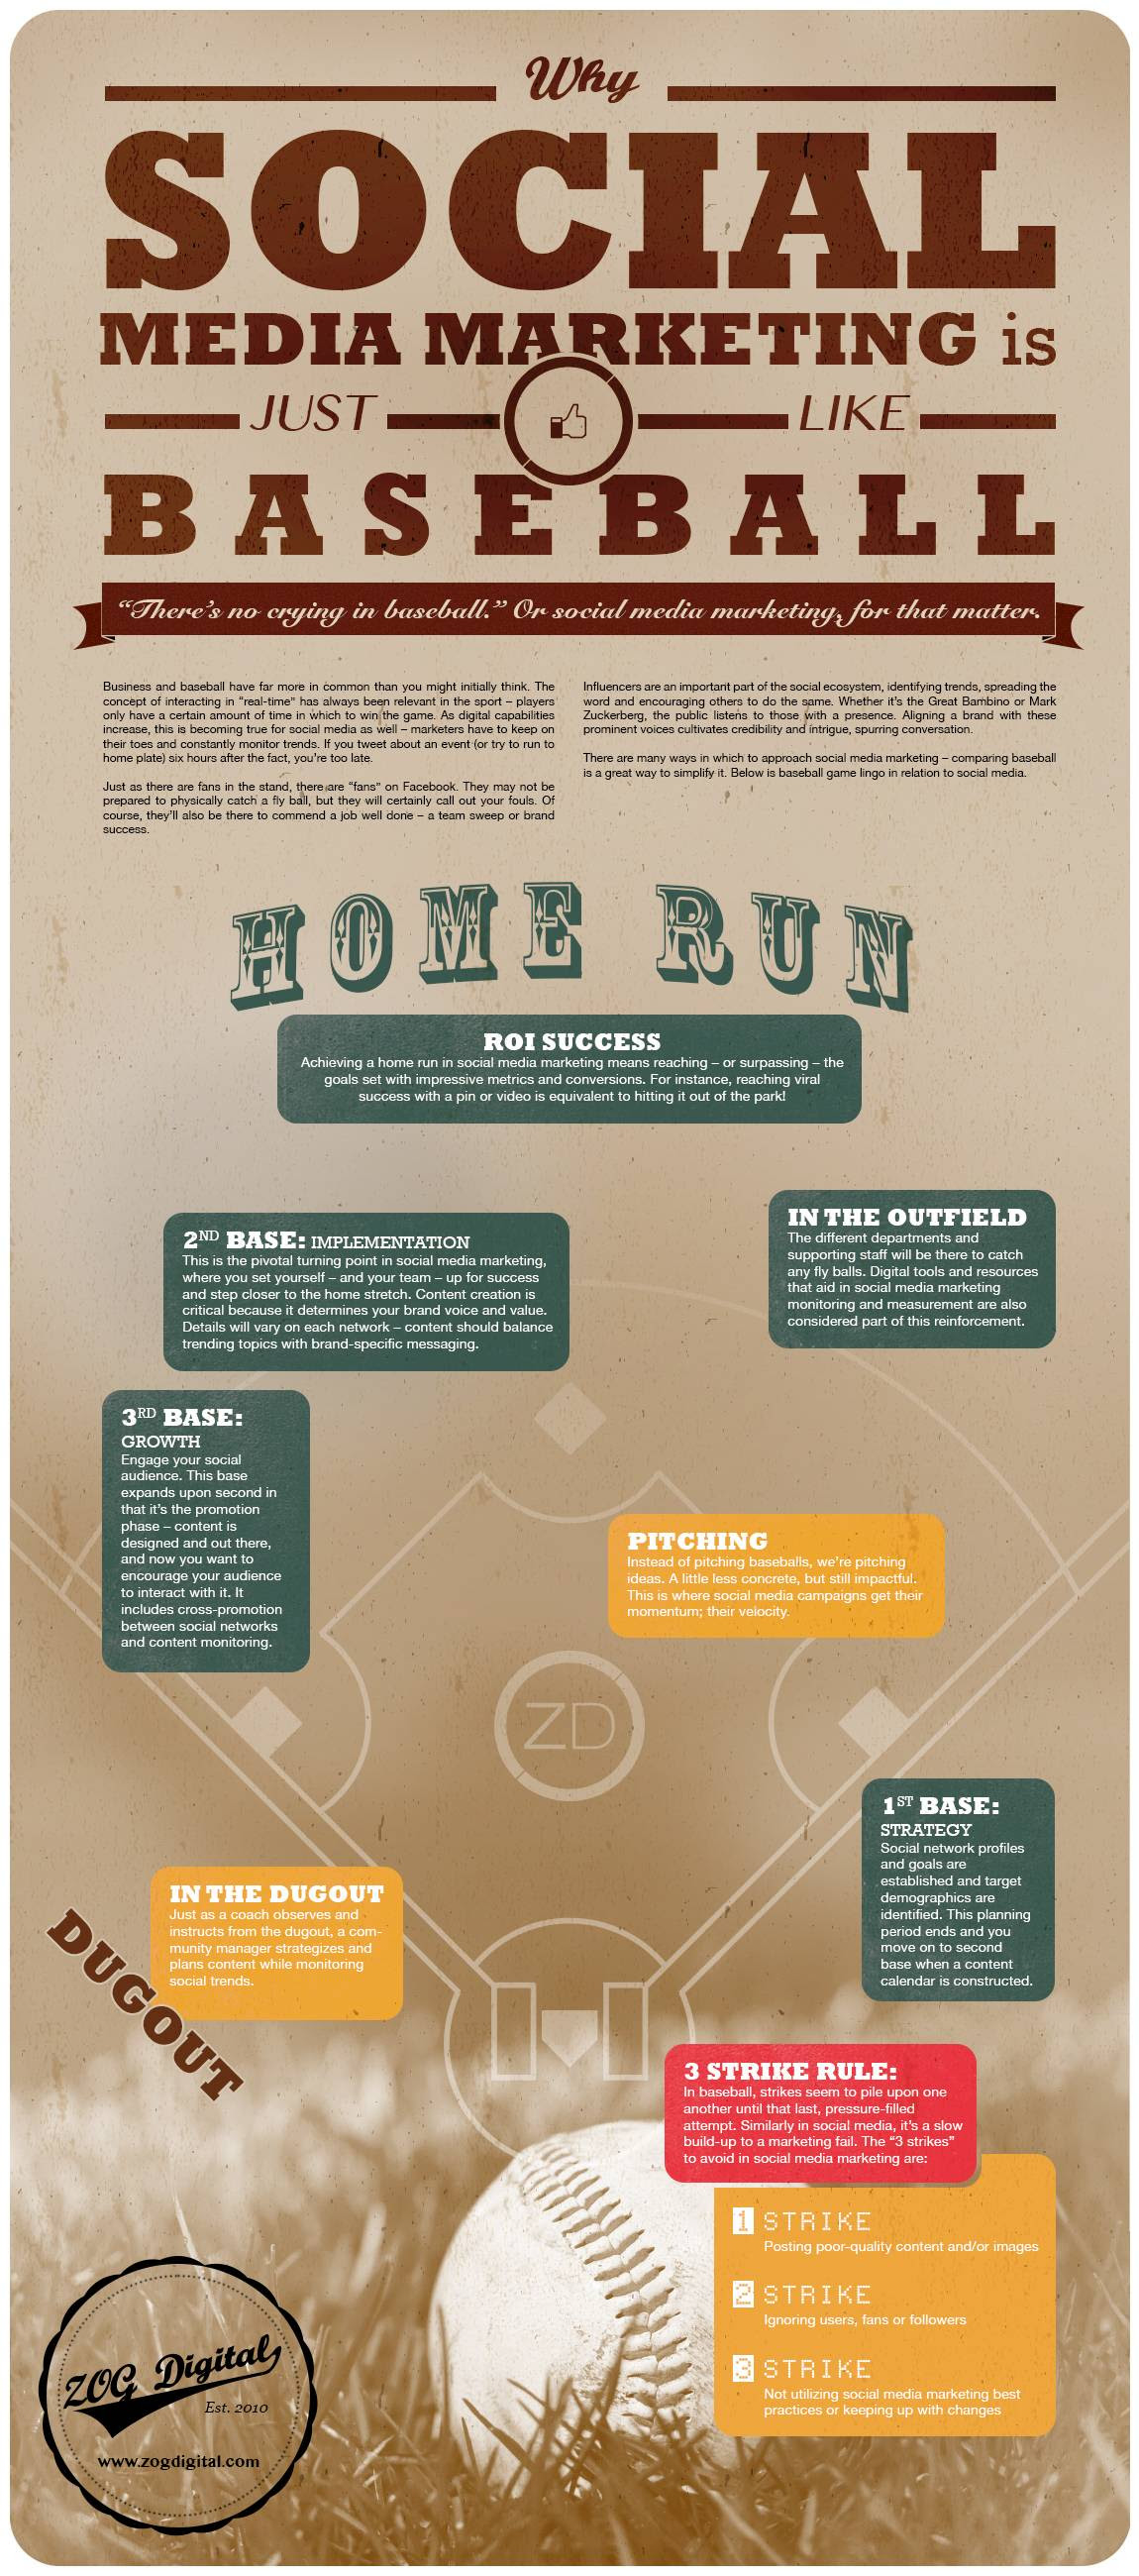 INFOGRAPHIC: Why Social Media Marketing is Just Like Baseball